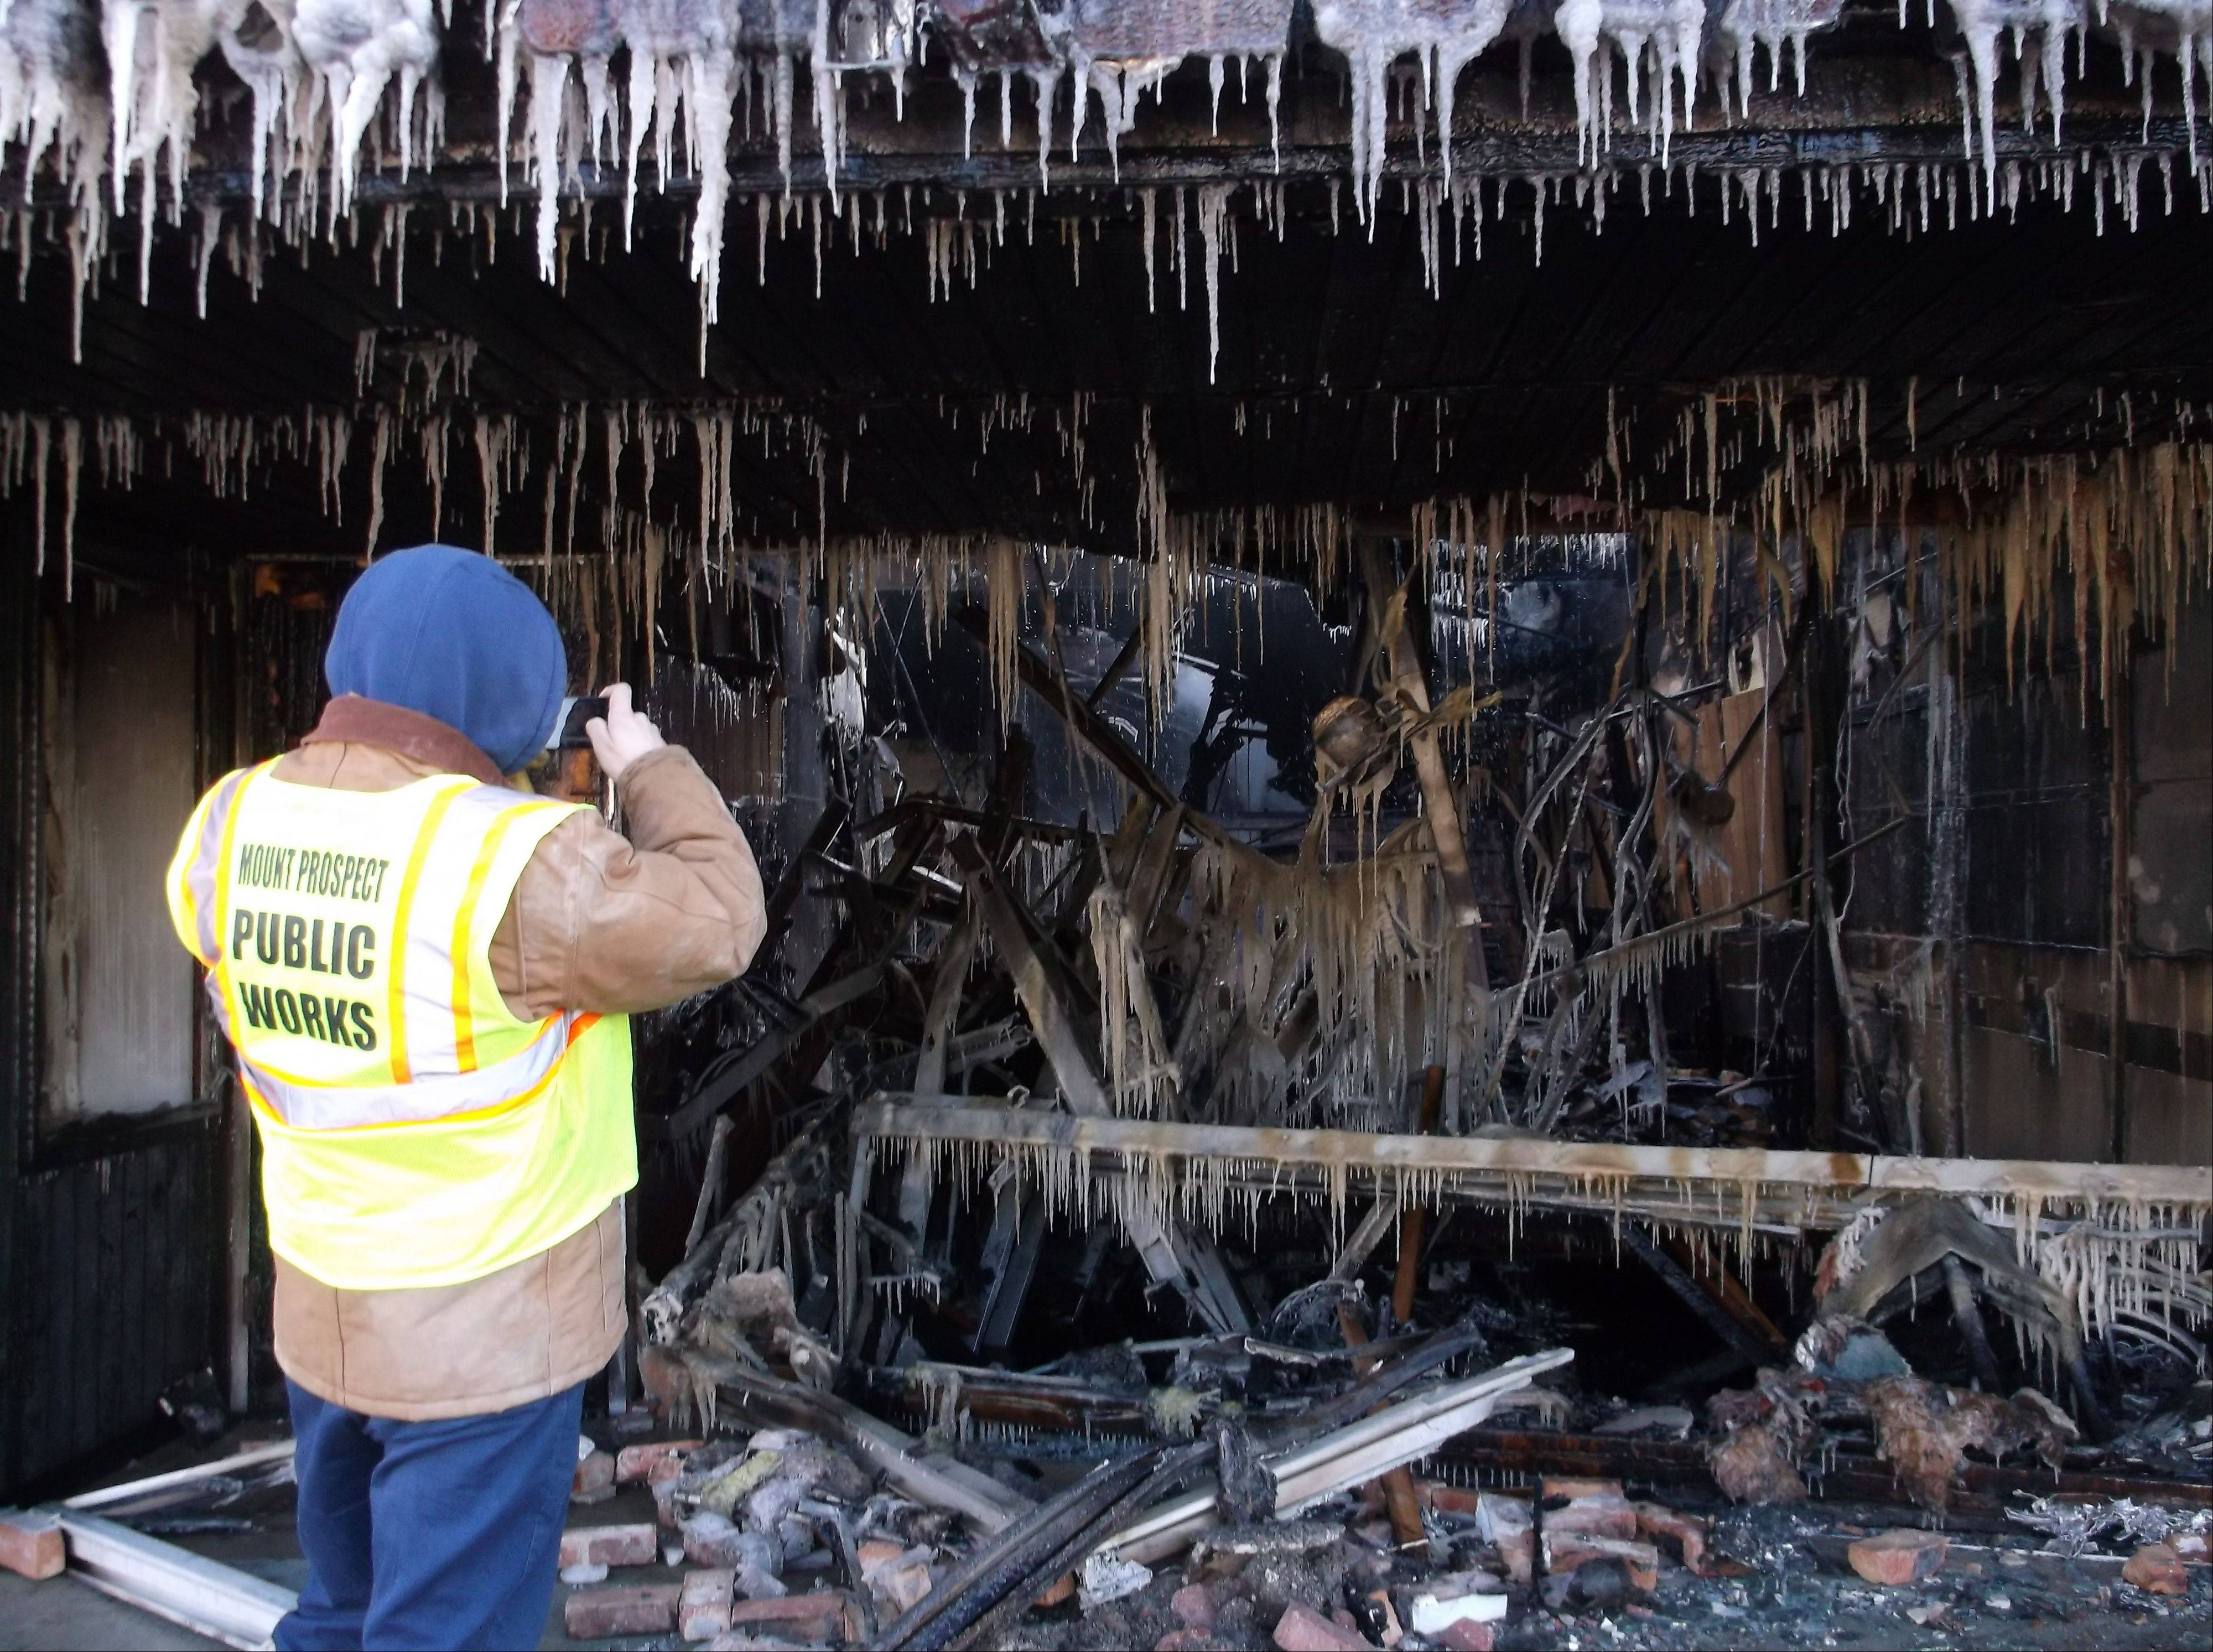 A Mount Prospect public works employee examines the gutted remains of a restaurant damaged by an early morning fire Sunday. No one was injured in the blaze, the cause of which is under investigation.